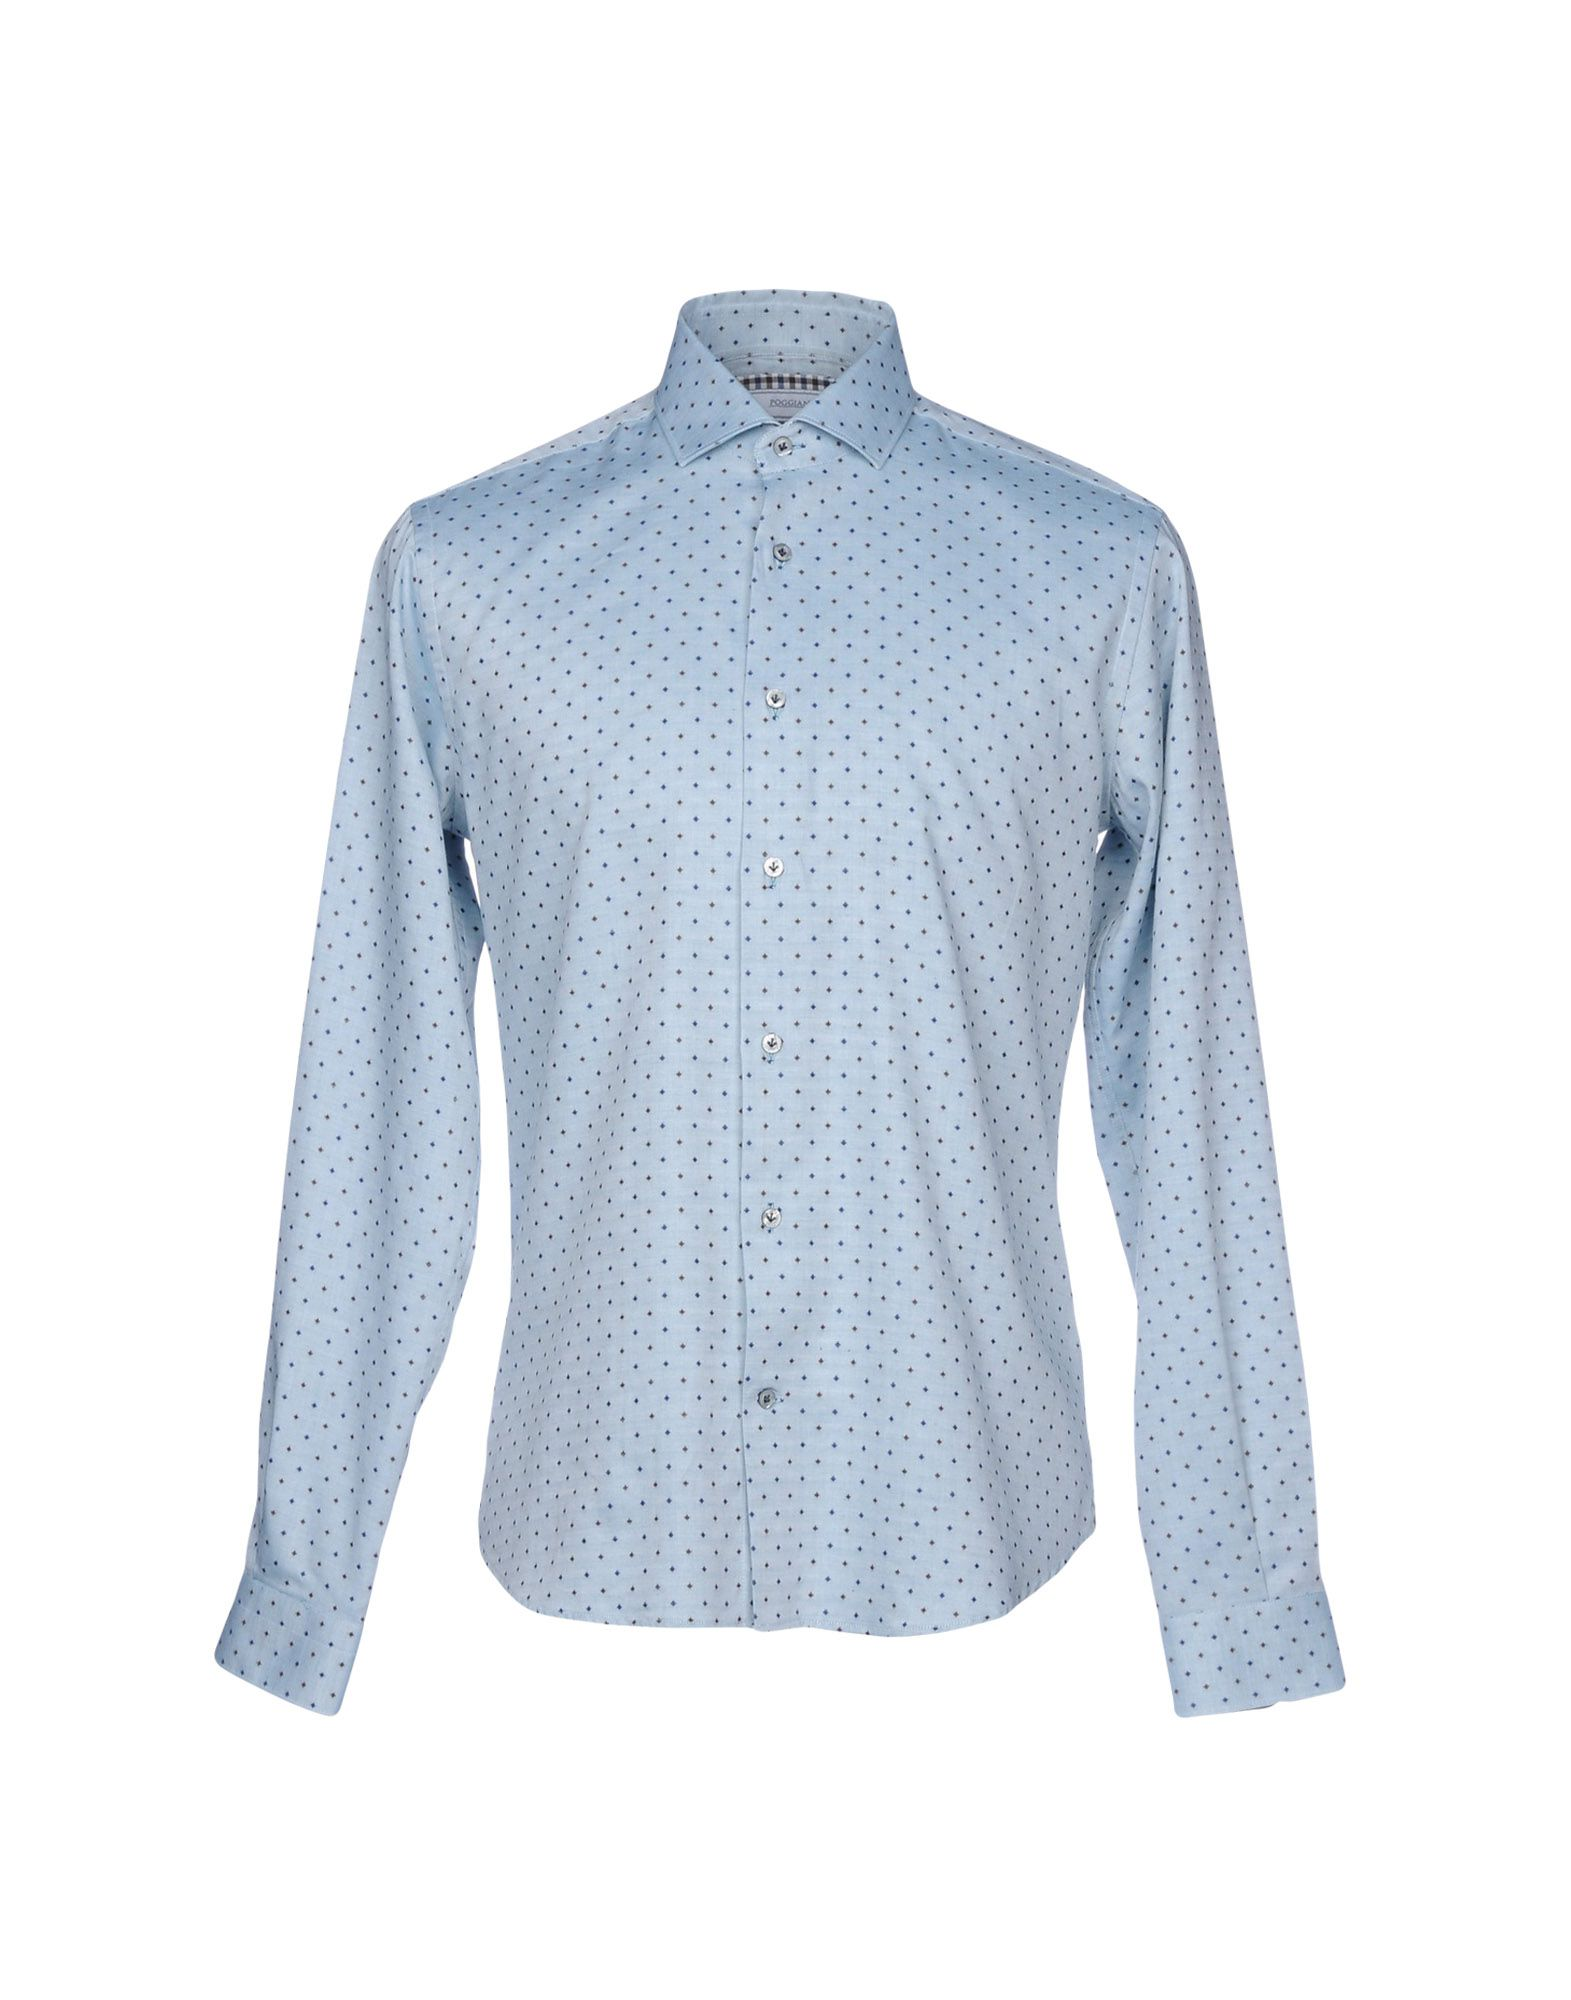 POGGIANTI Patterned Shirt in Pastel Blue